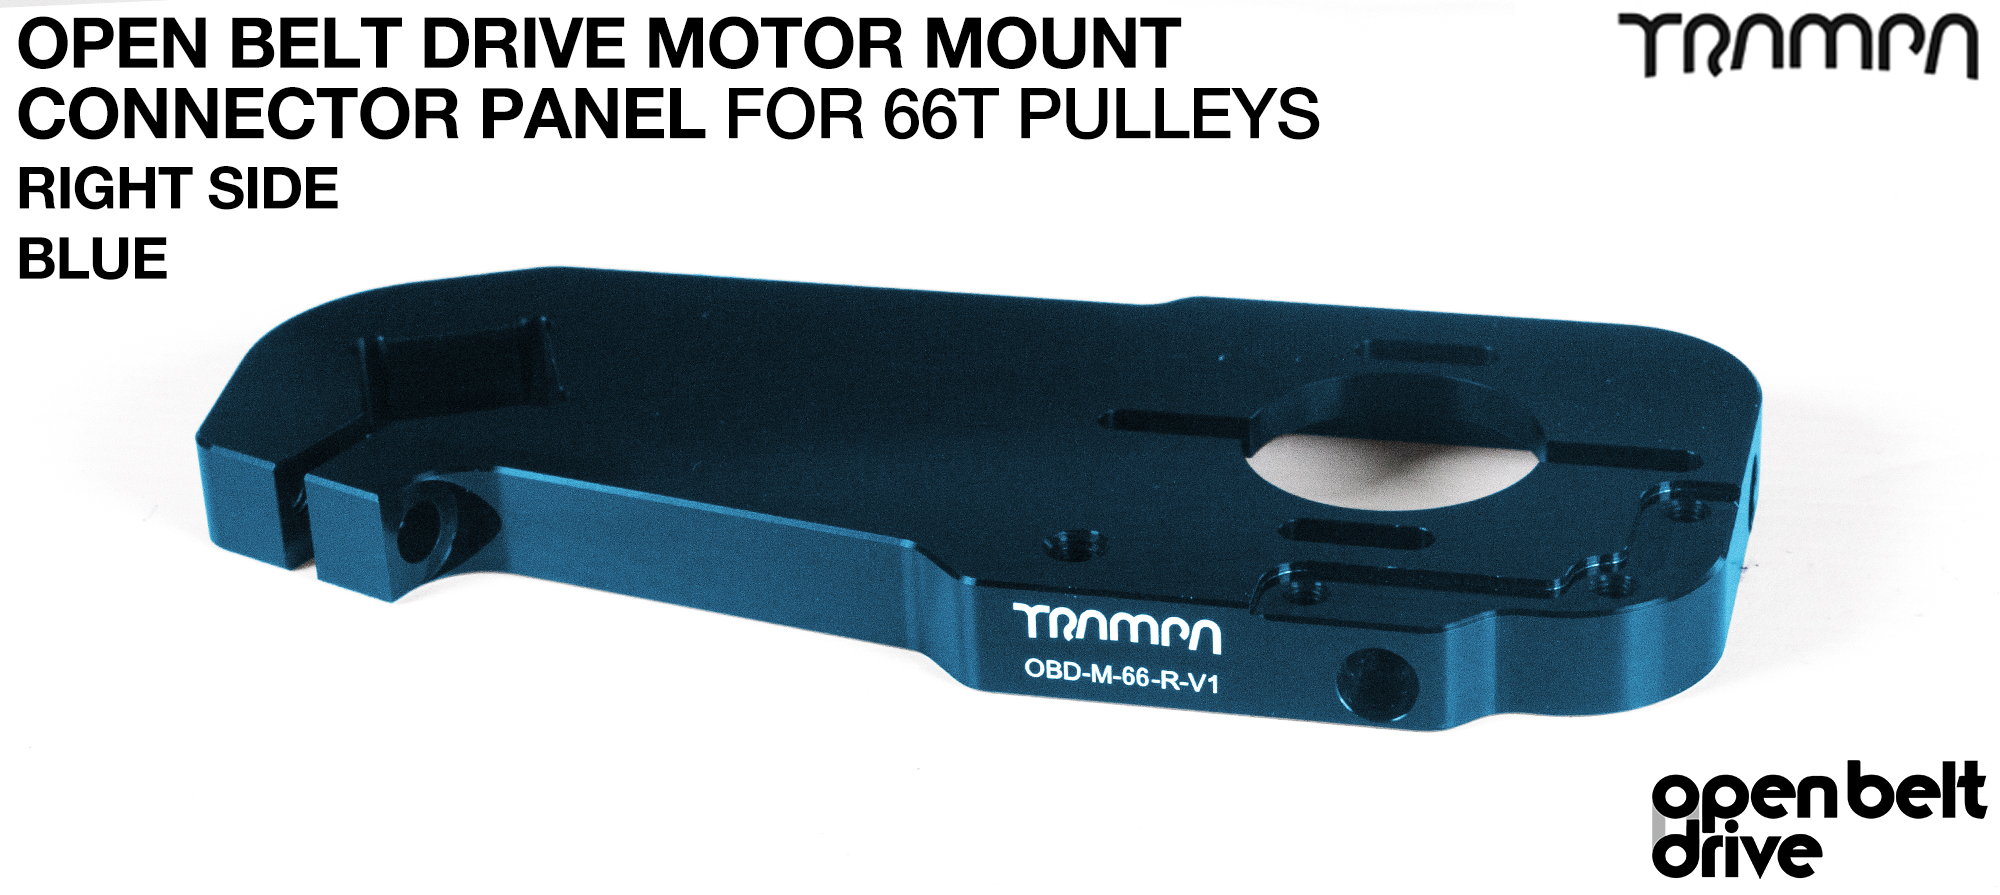 OBD Open Belt Drive Motor Mount Connector Panel for 66 tooth Pulleys - GOOFY - BLUE